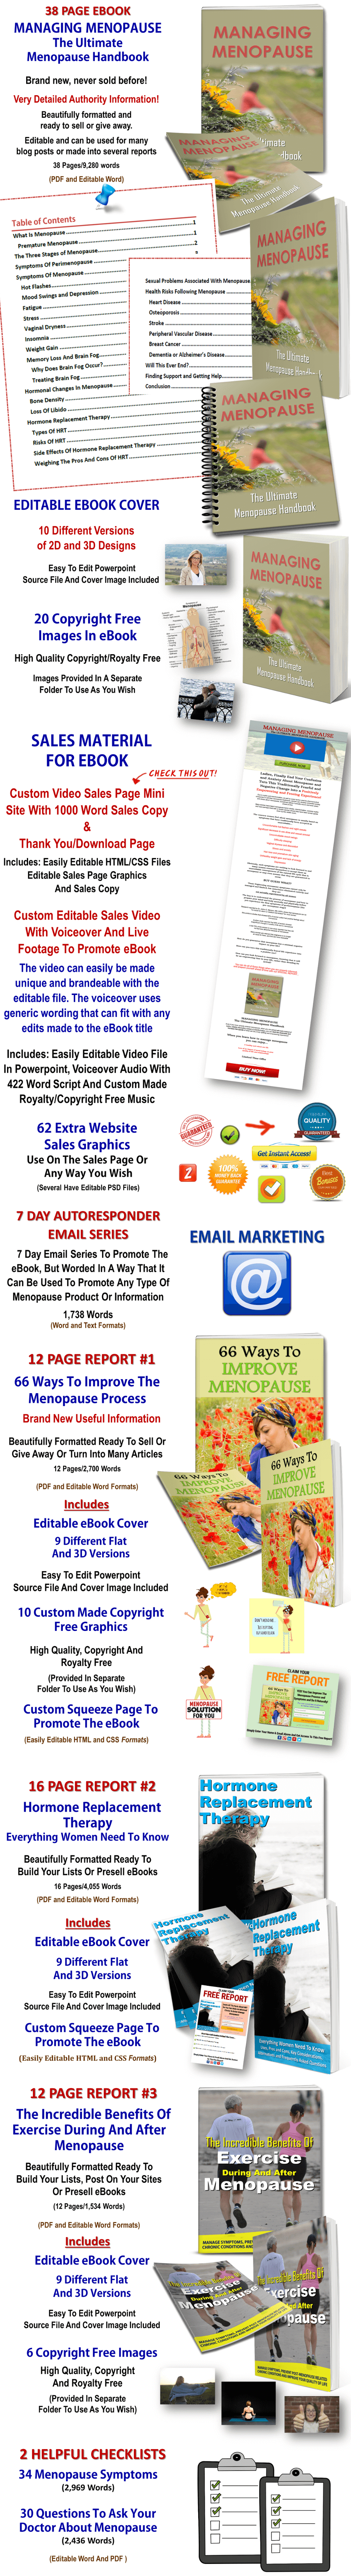 Giant Menopause PLR: eBooks, Videos, Infographics, Articles